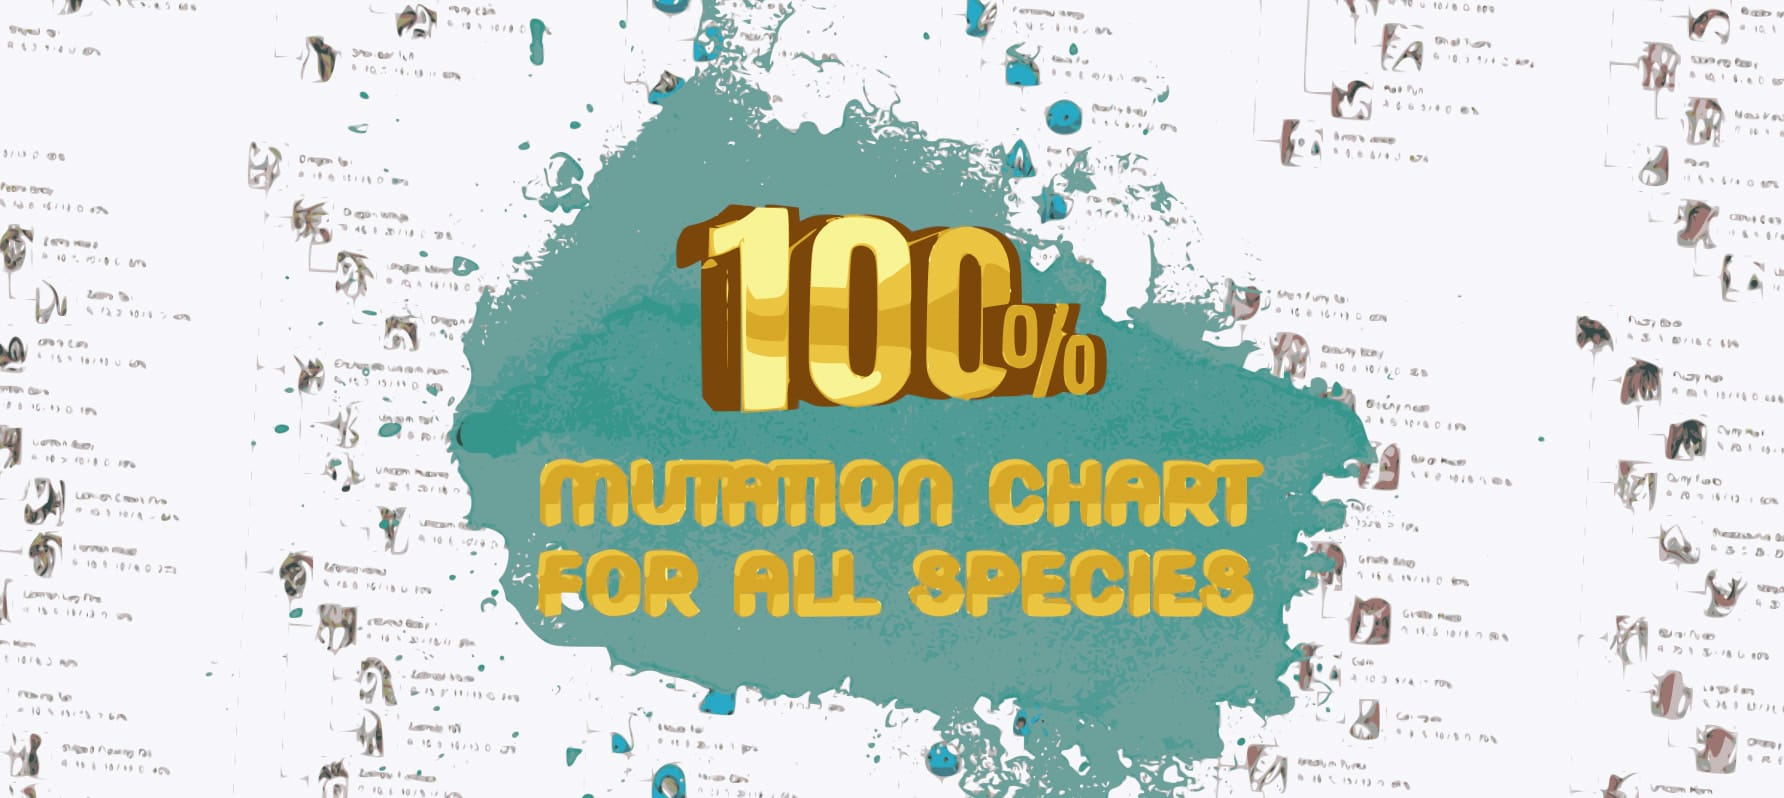 Mutation chart is now 100% for all species image